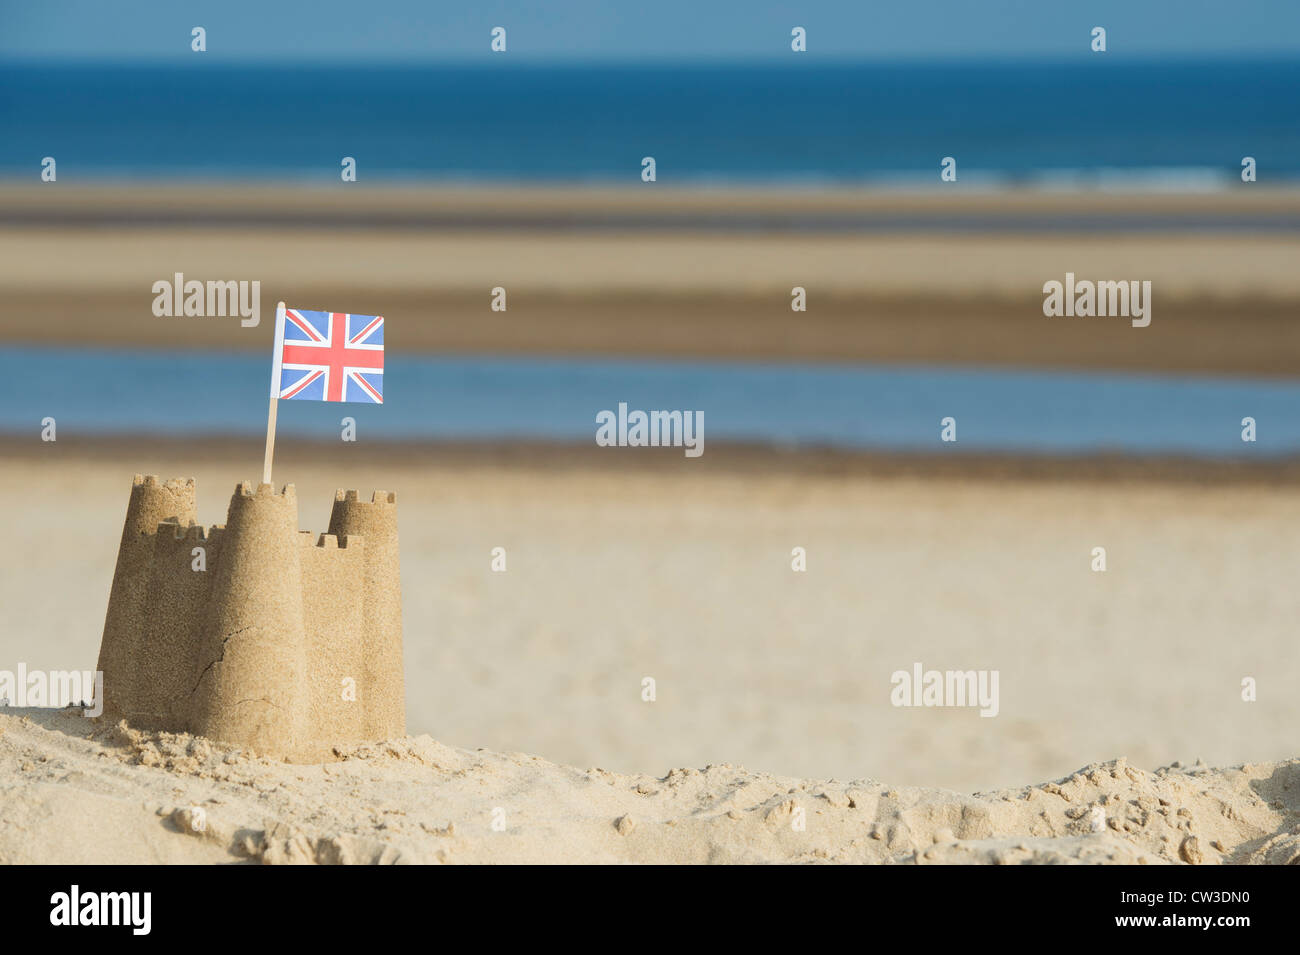 Union Jack flag in a sandcastle on a sand dune. Wells next the sea. Norfolk, England - Stock Image